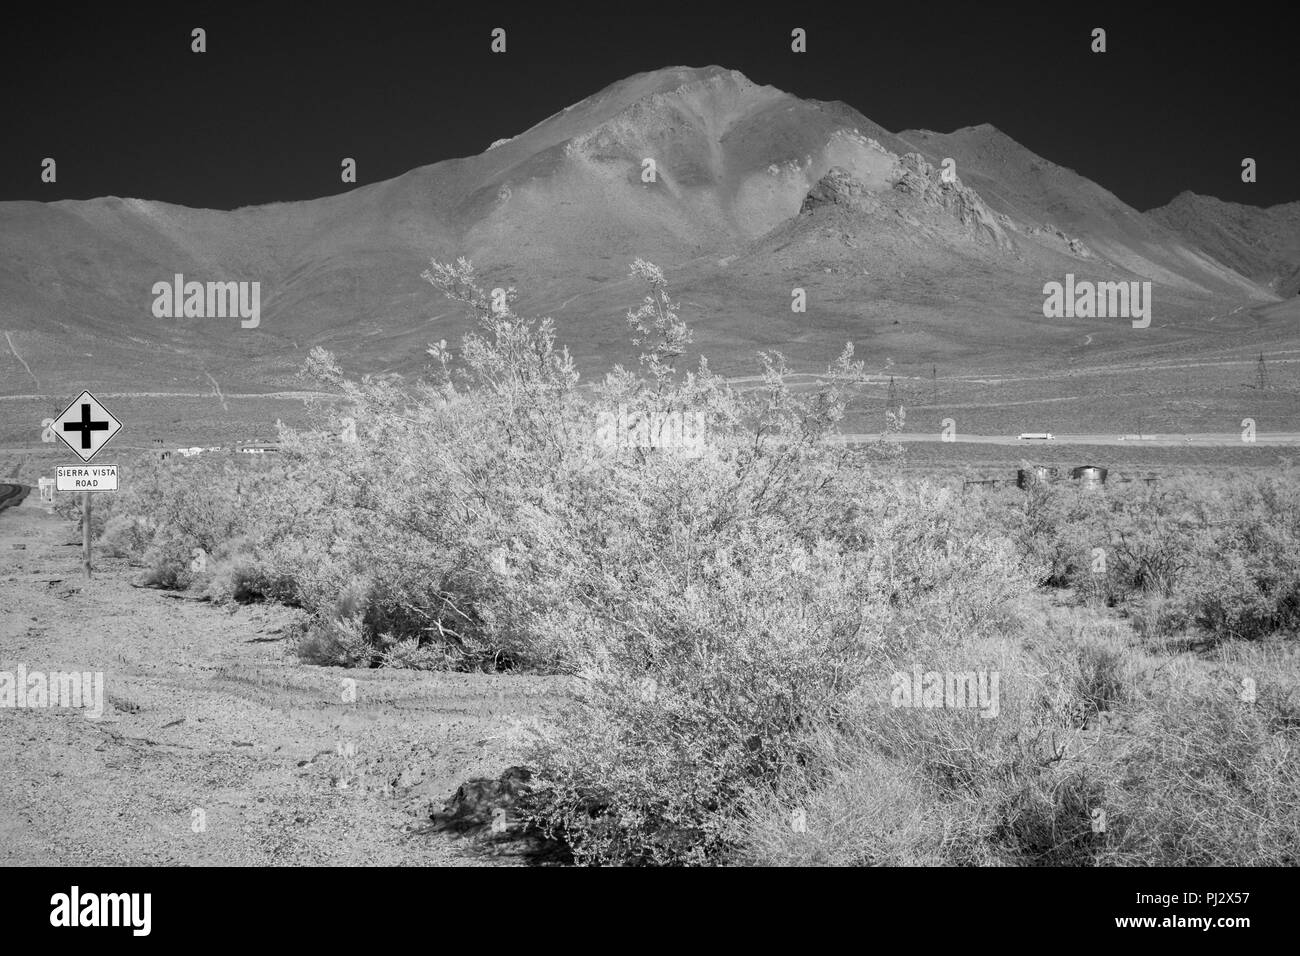 Highway sign and desert brush with tall barren mountains under a black sky. - Stock Image